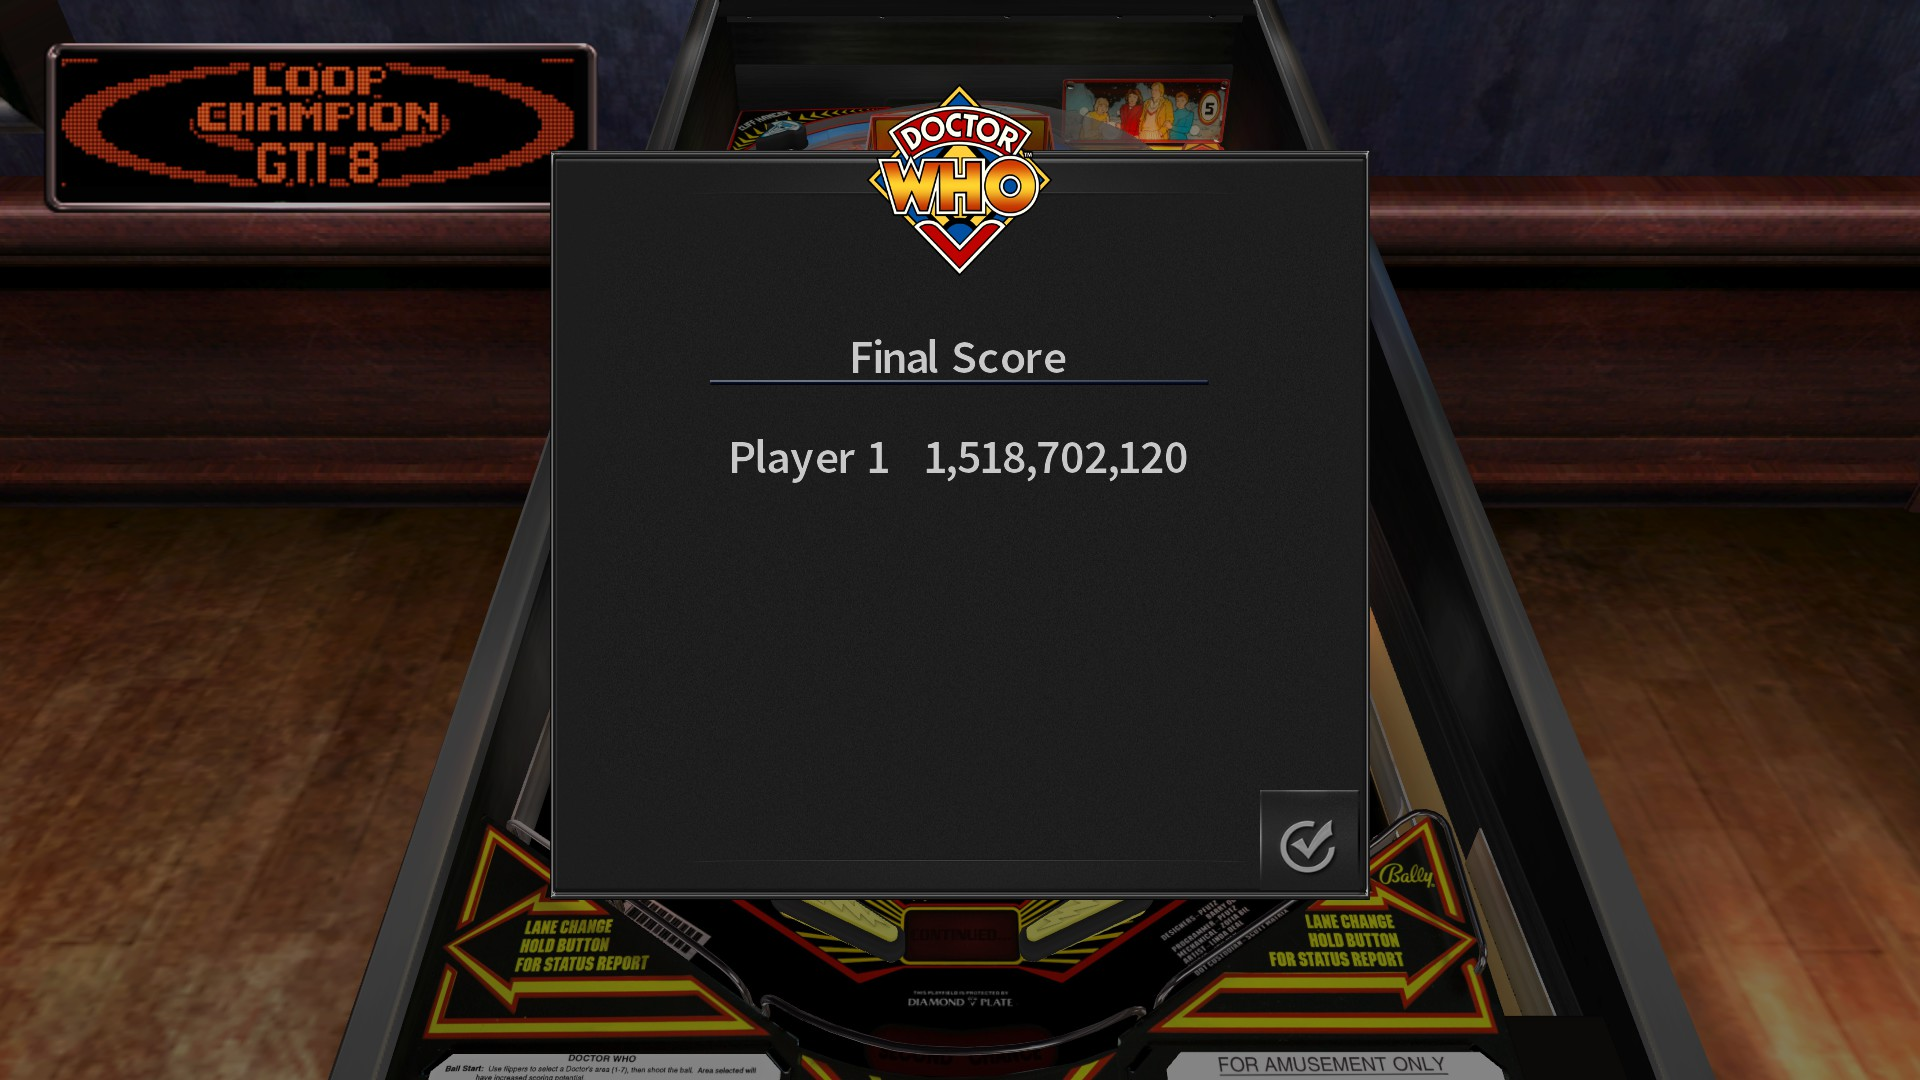 GTibel: Pinball Arcade: Doctor Who (PC) 1,518,702,120 points on 2017-09-06 10:01:02